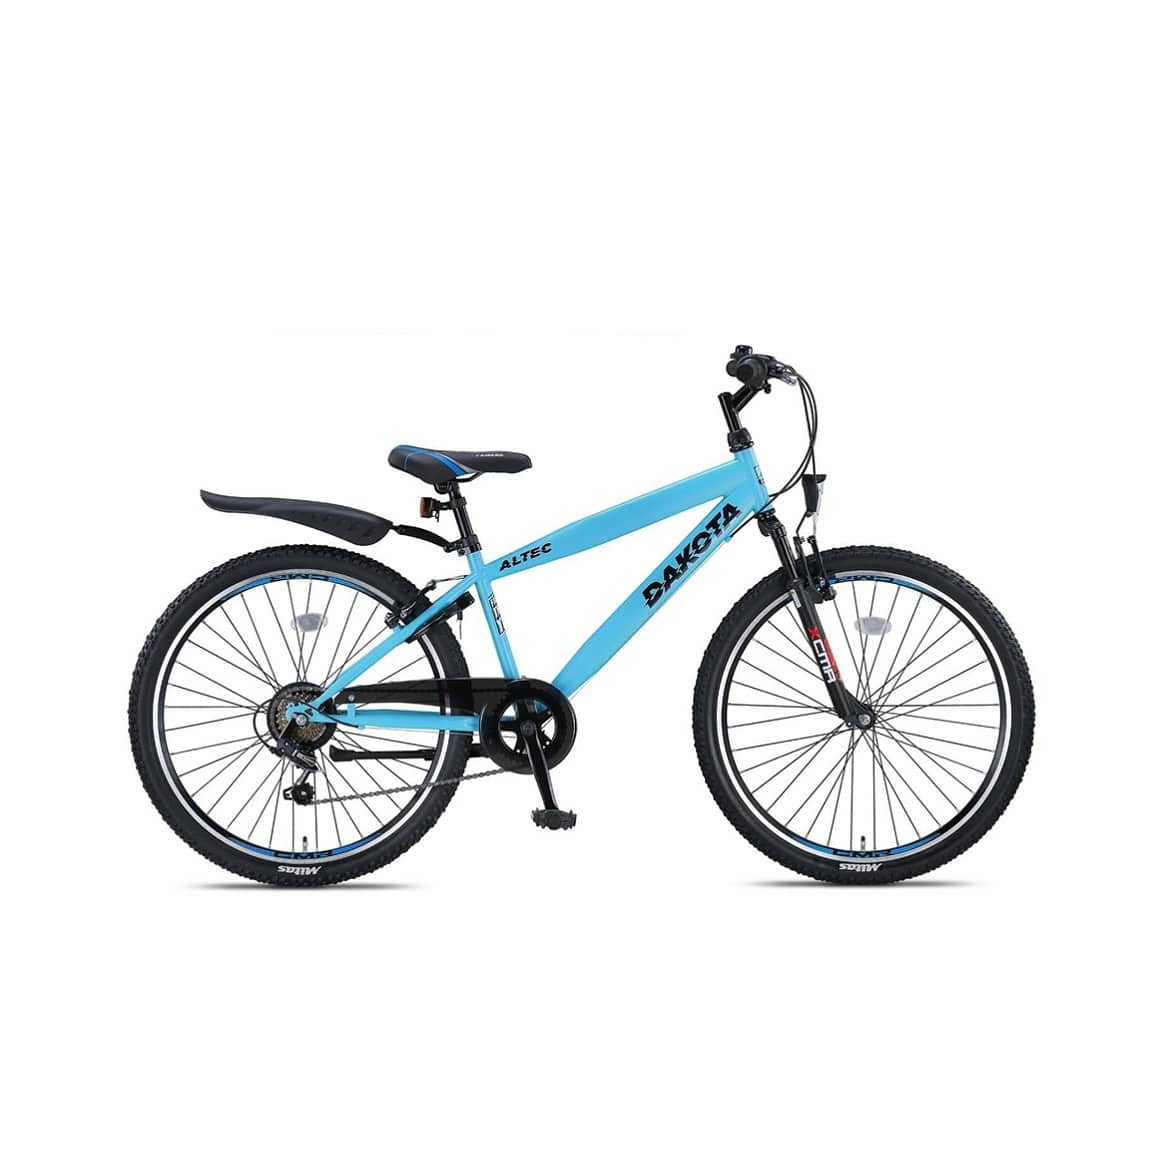 Altec-Dakota-26inch-Jongensfiets-7speed-2019-Neon-Blue-Nieuw-min (1)